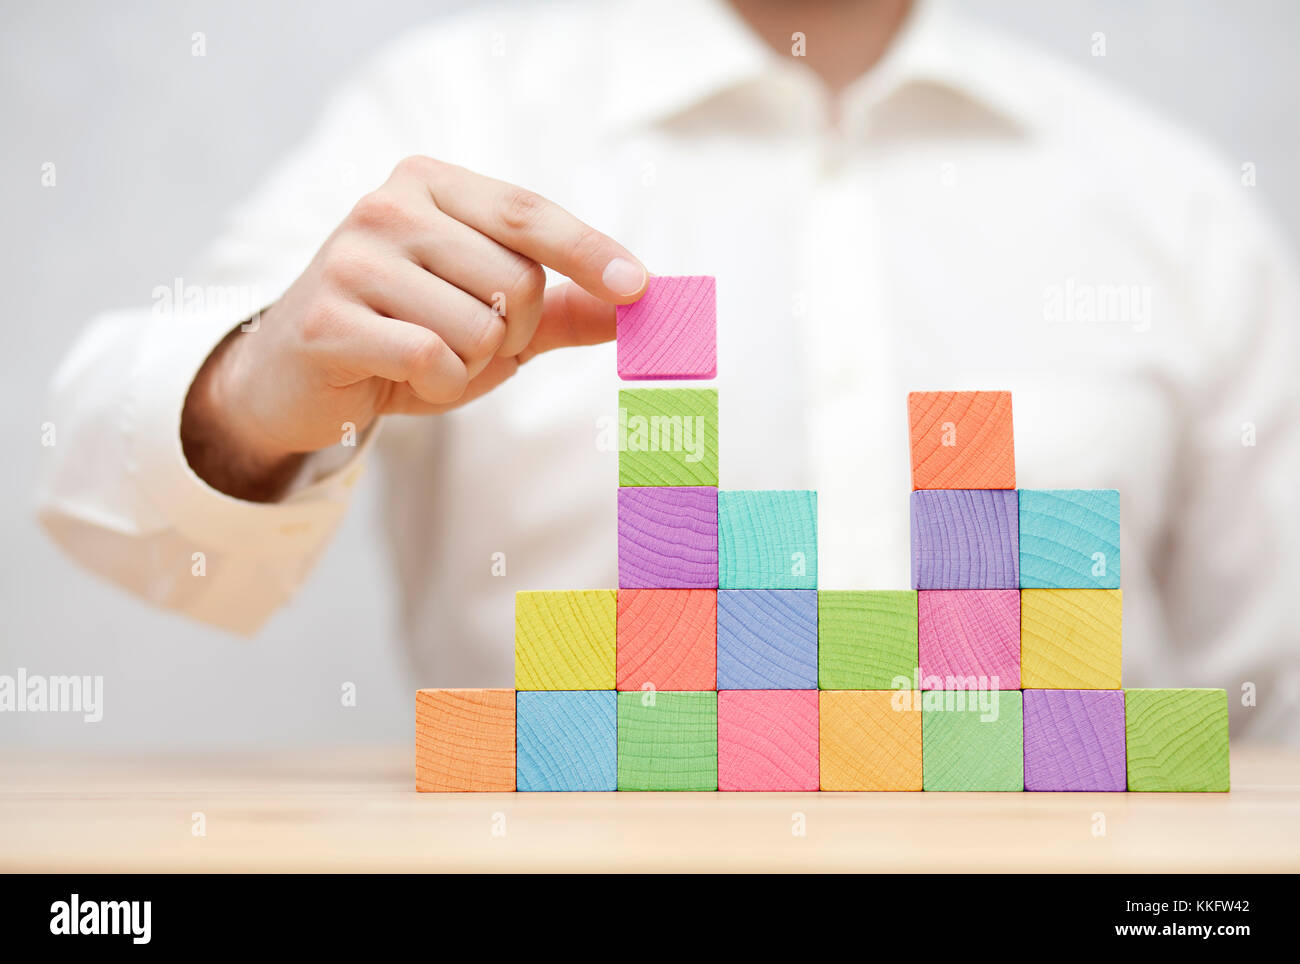 Man's hand stacking colorful wooden blocks. Business development concept - Stock Image